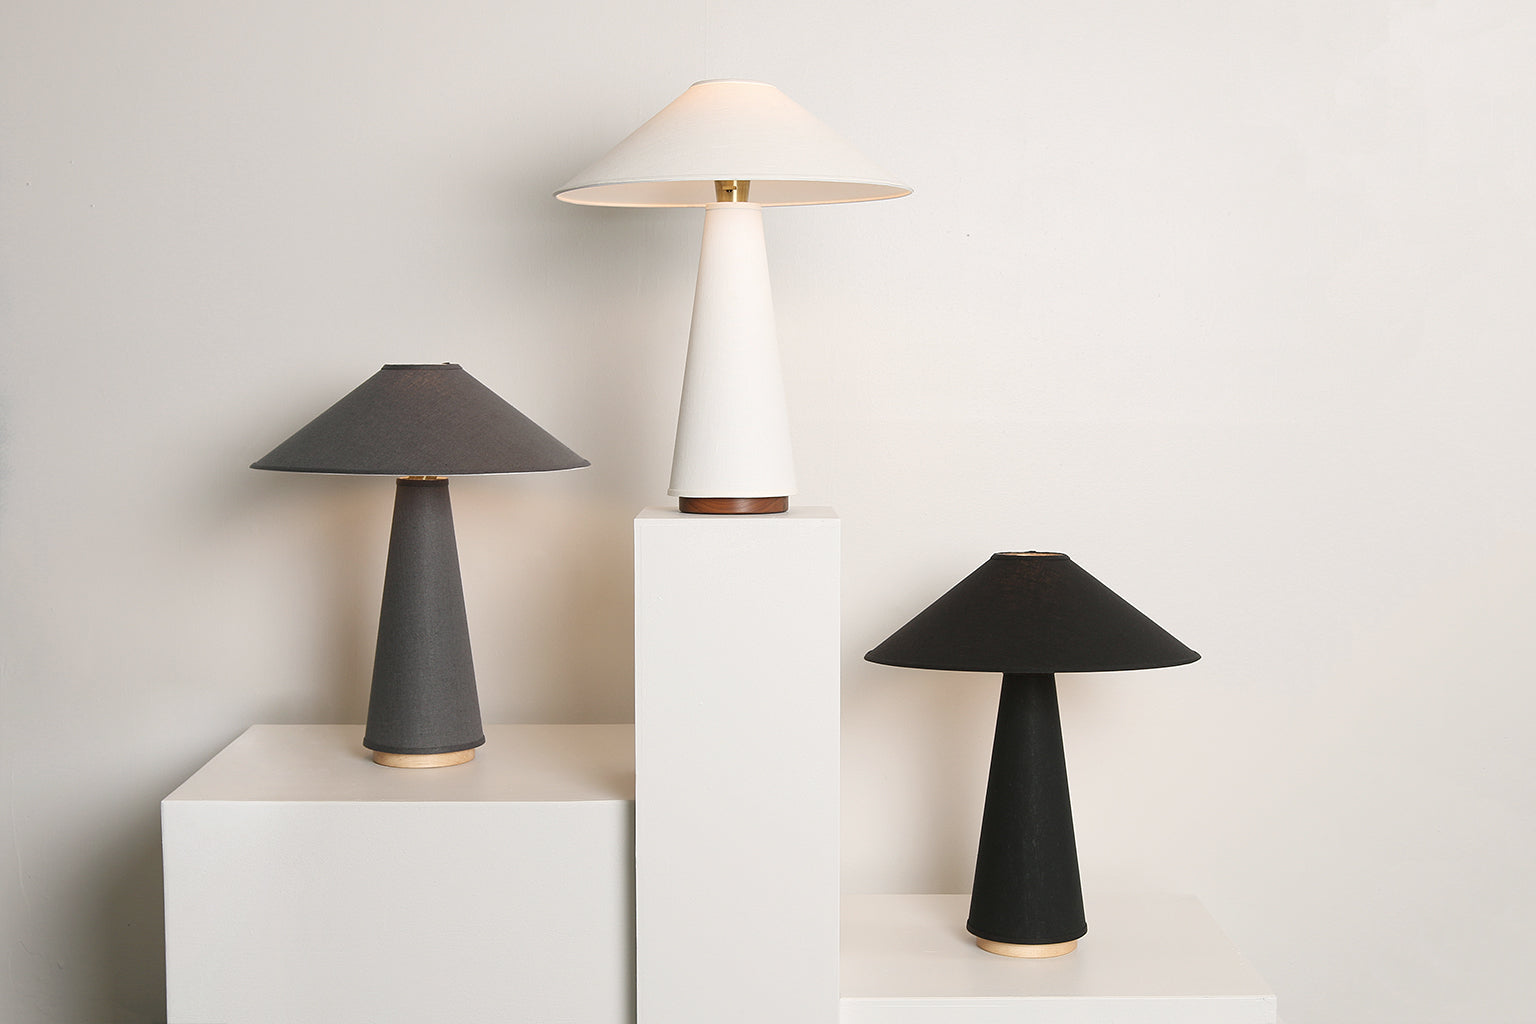 Linden Table Lamp in Black Linen, Maple Base, and Brass Details